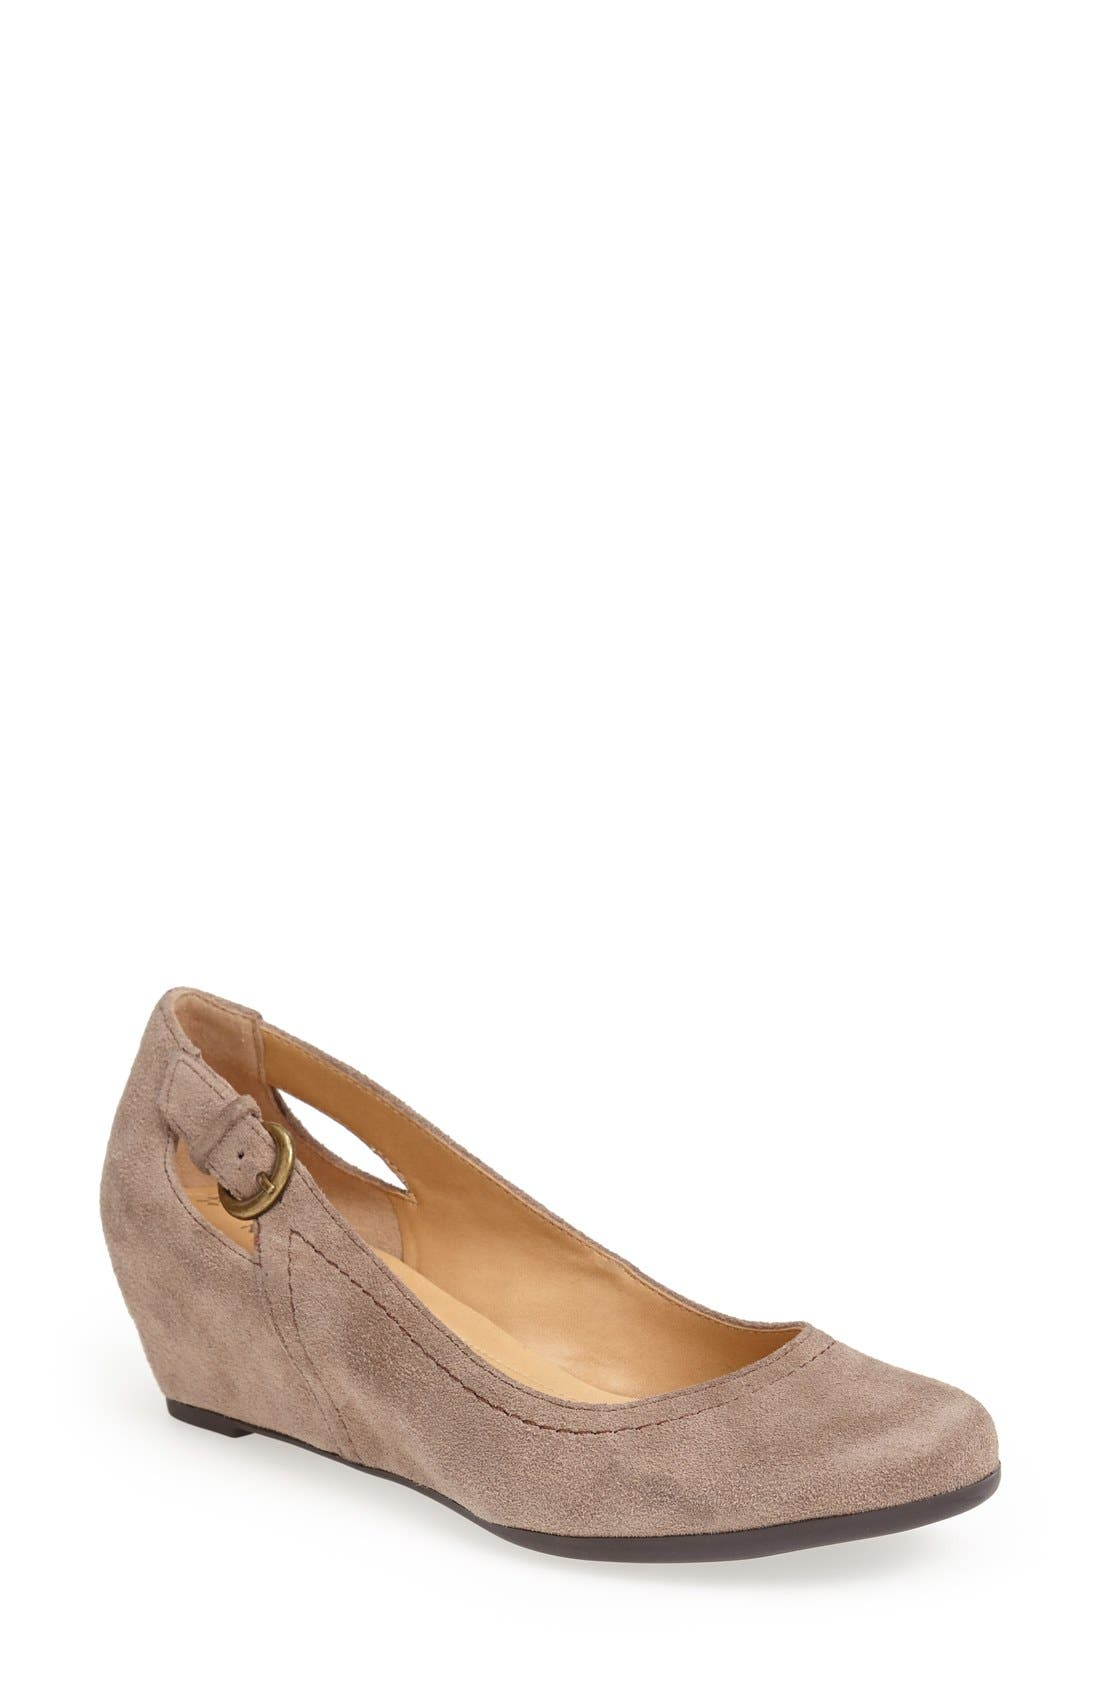 Alternate Image 1 Selected - Naturalizer 'Naja' Suede Pump (Women)